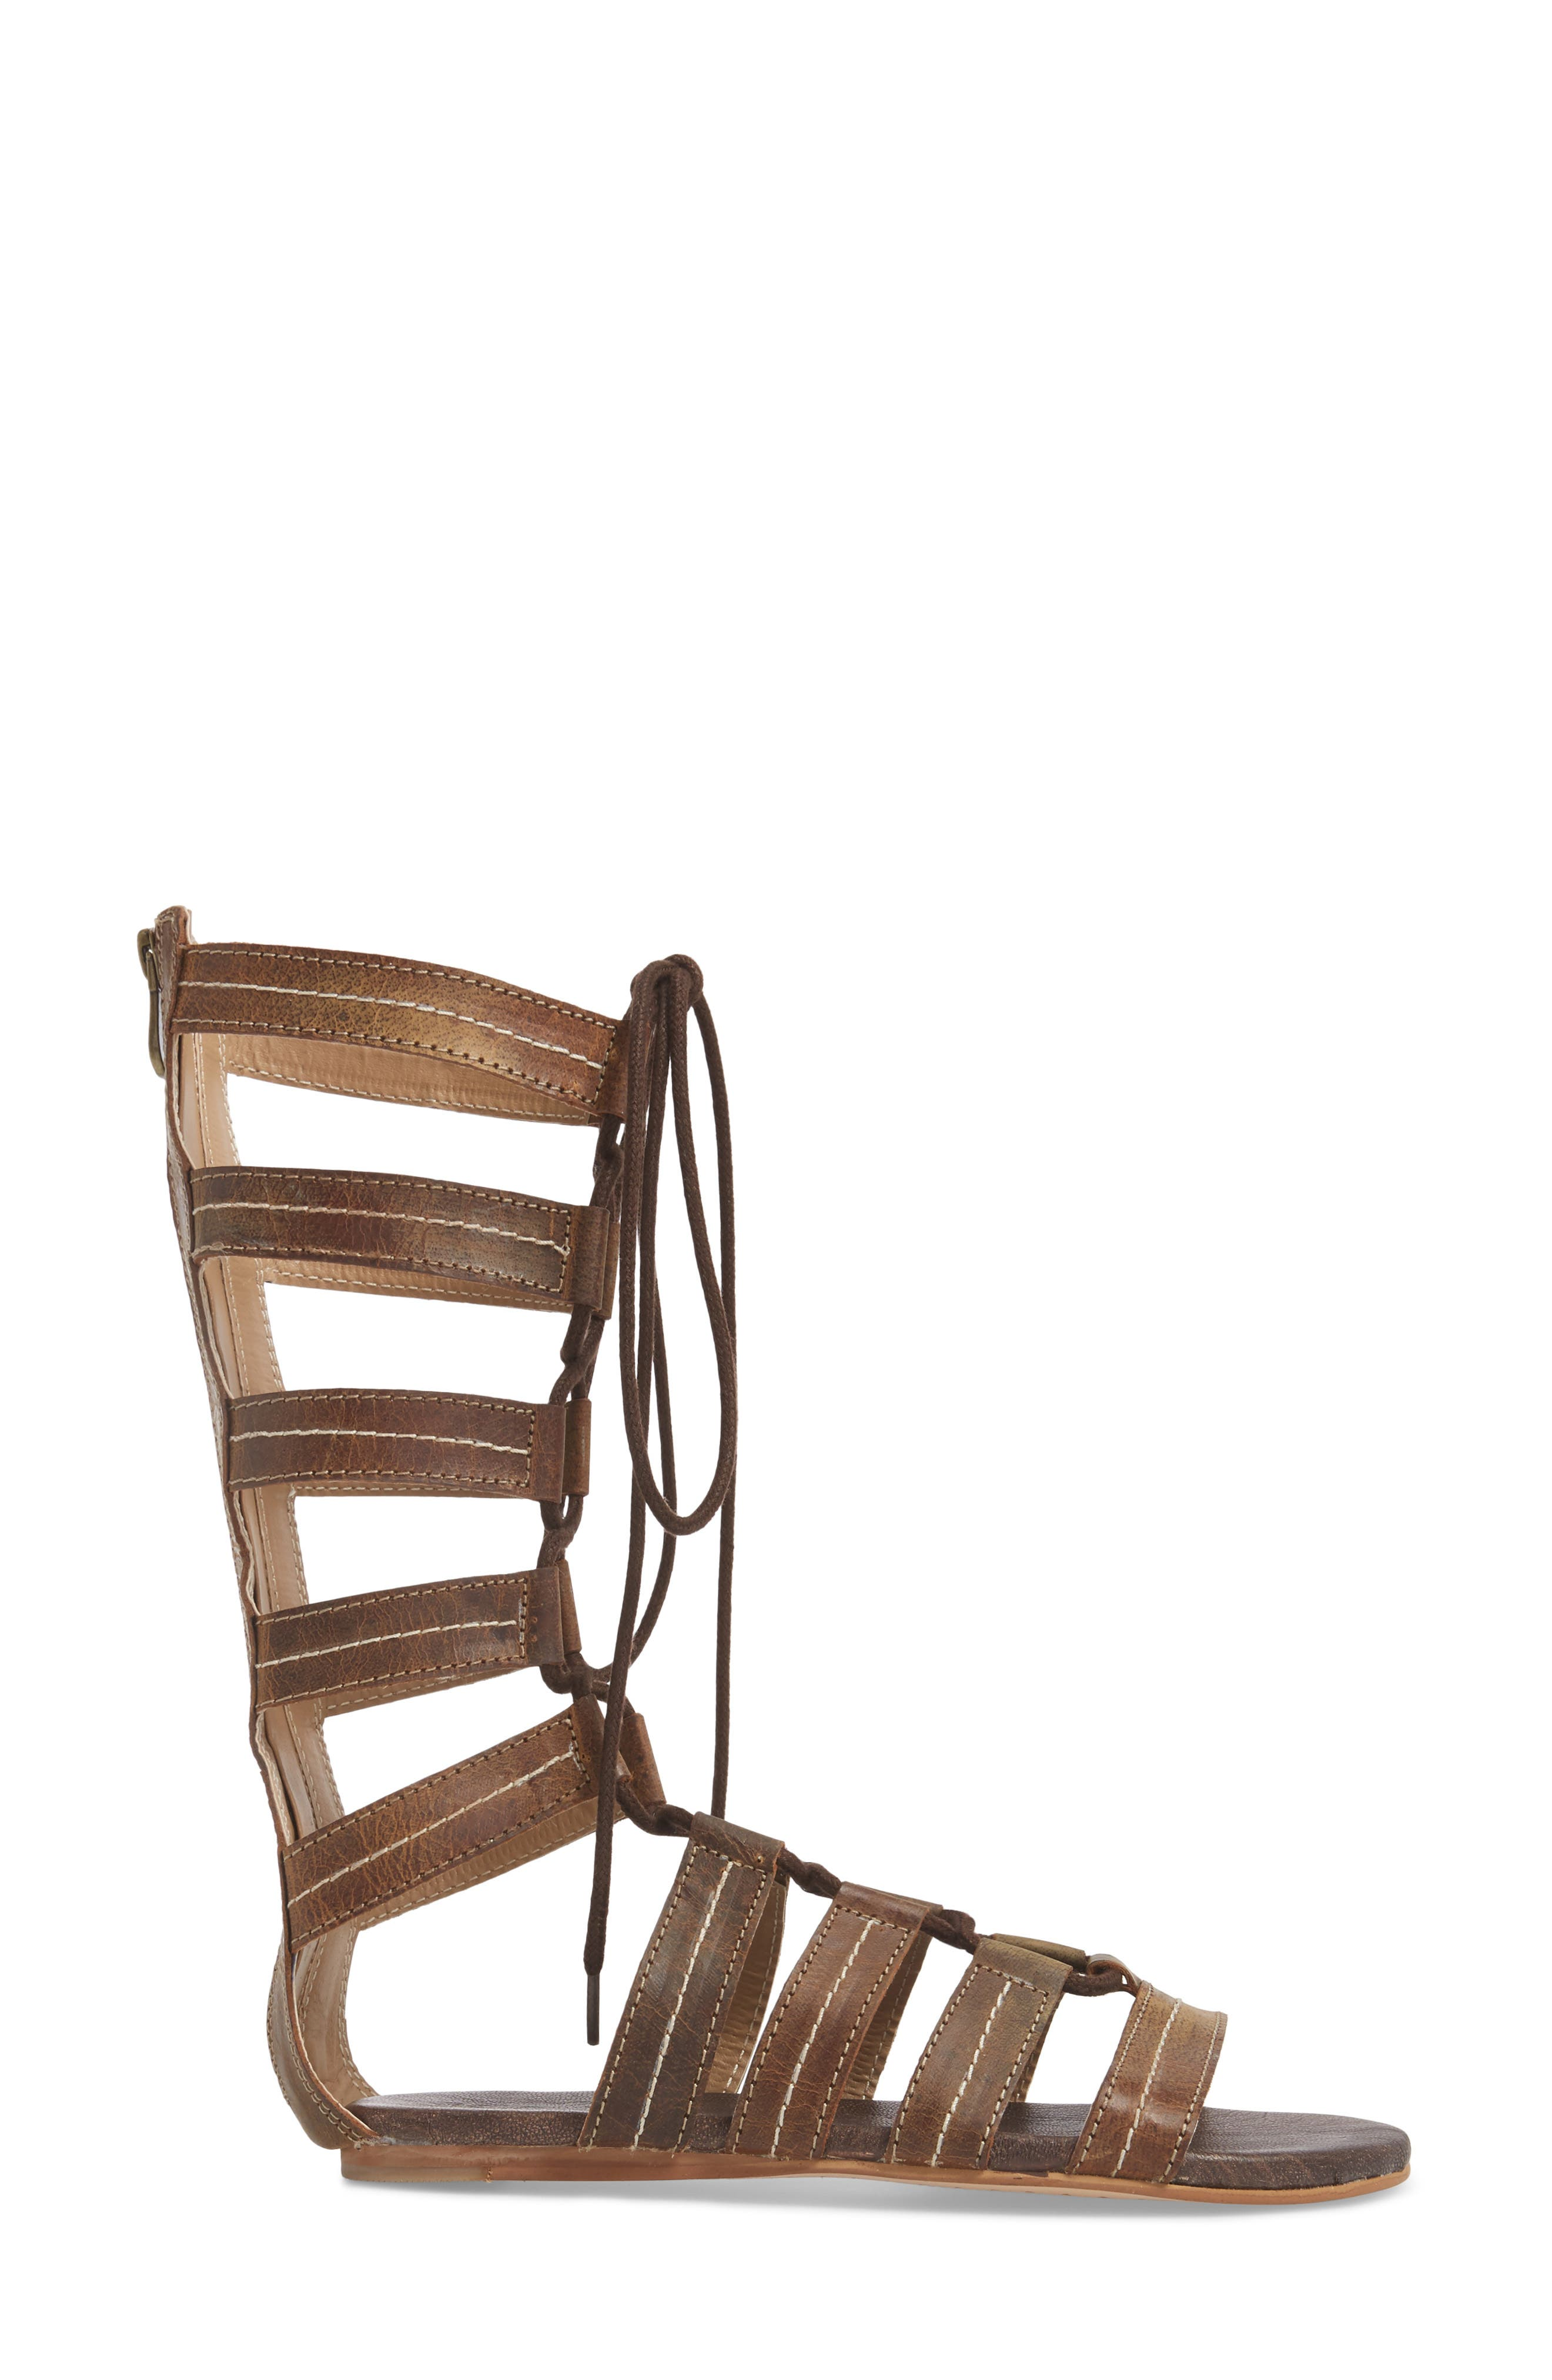 Rhea Lace-Up Gladiator Sandal,                             Alternate thumbnail 3, color,                             Tan Greenland